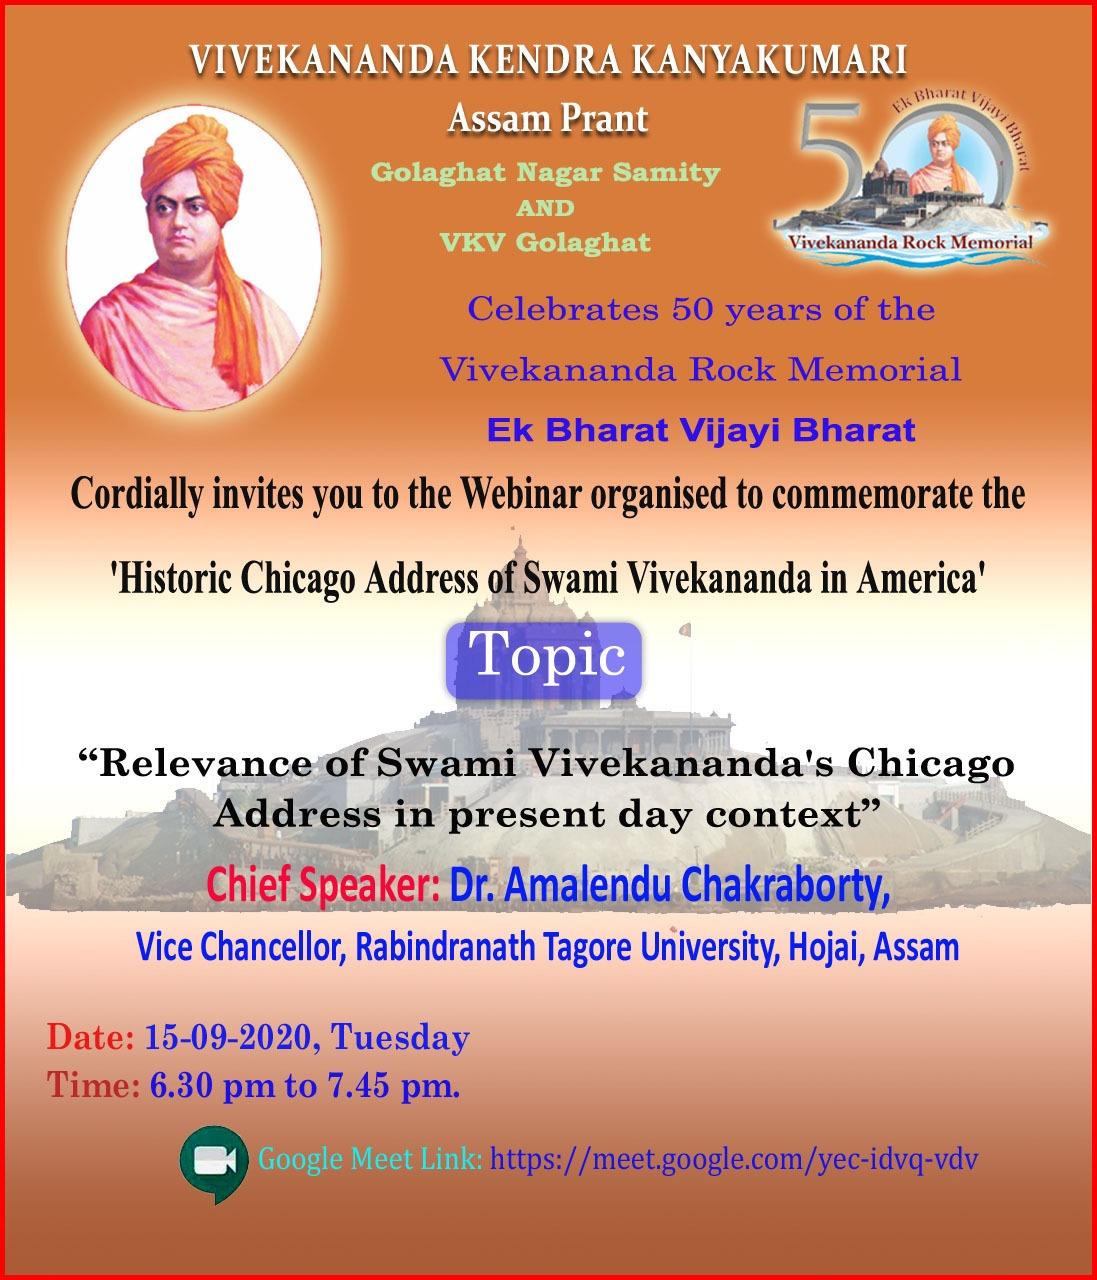 Historic Chicago Address of Swami Vivekananda in America - Webinar - Golaghat